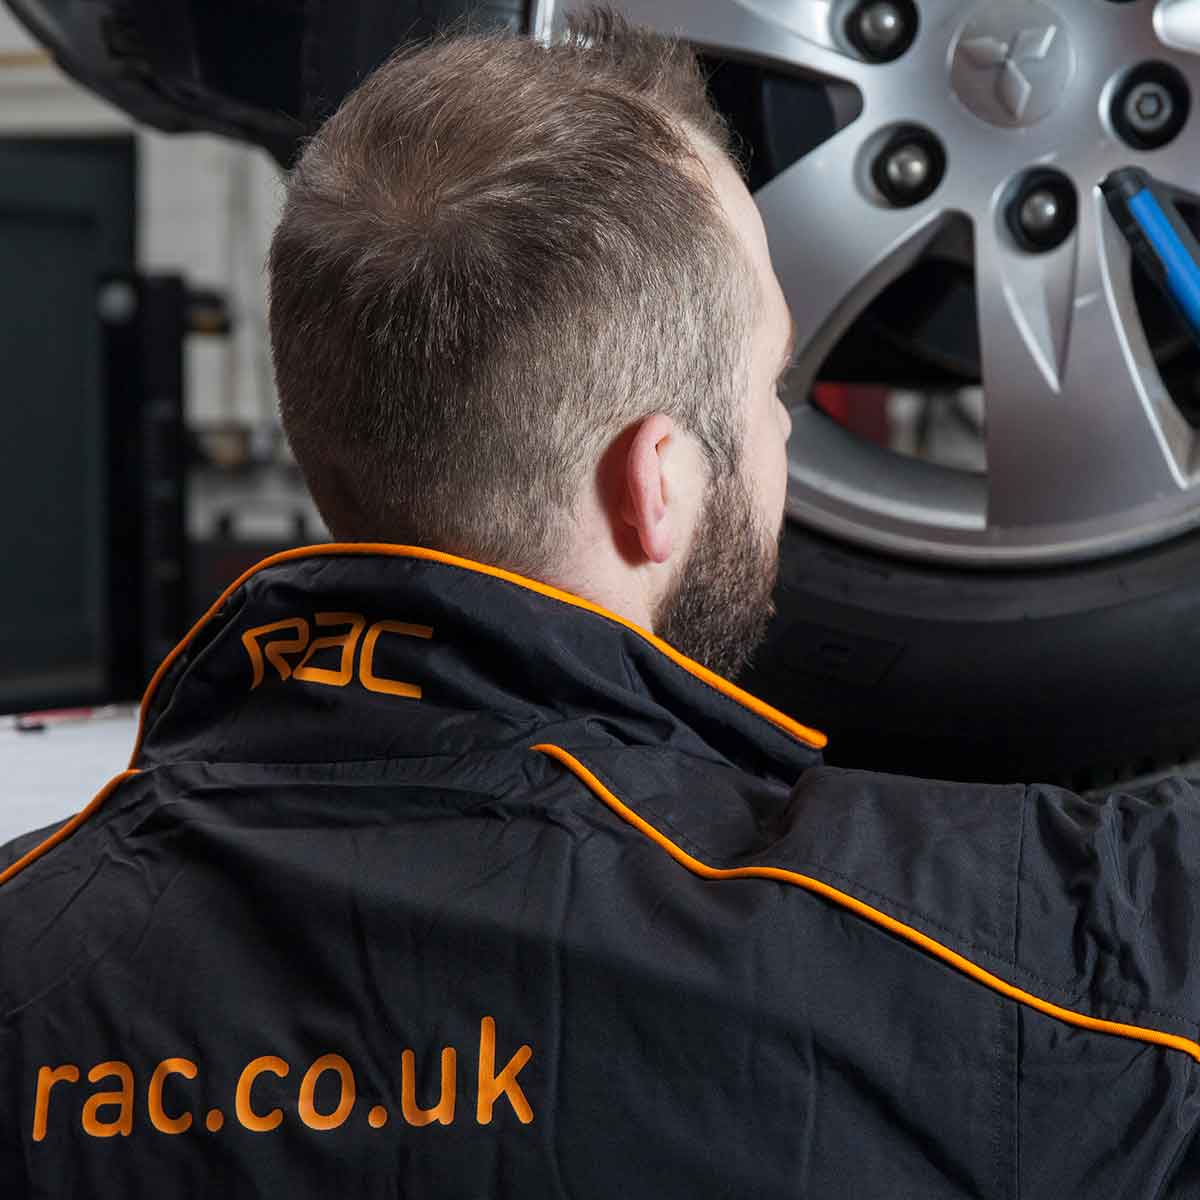 A technician wearing RAC overalls attending to a car